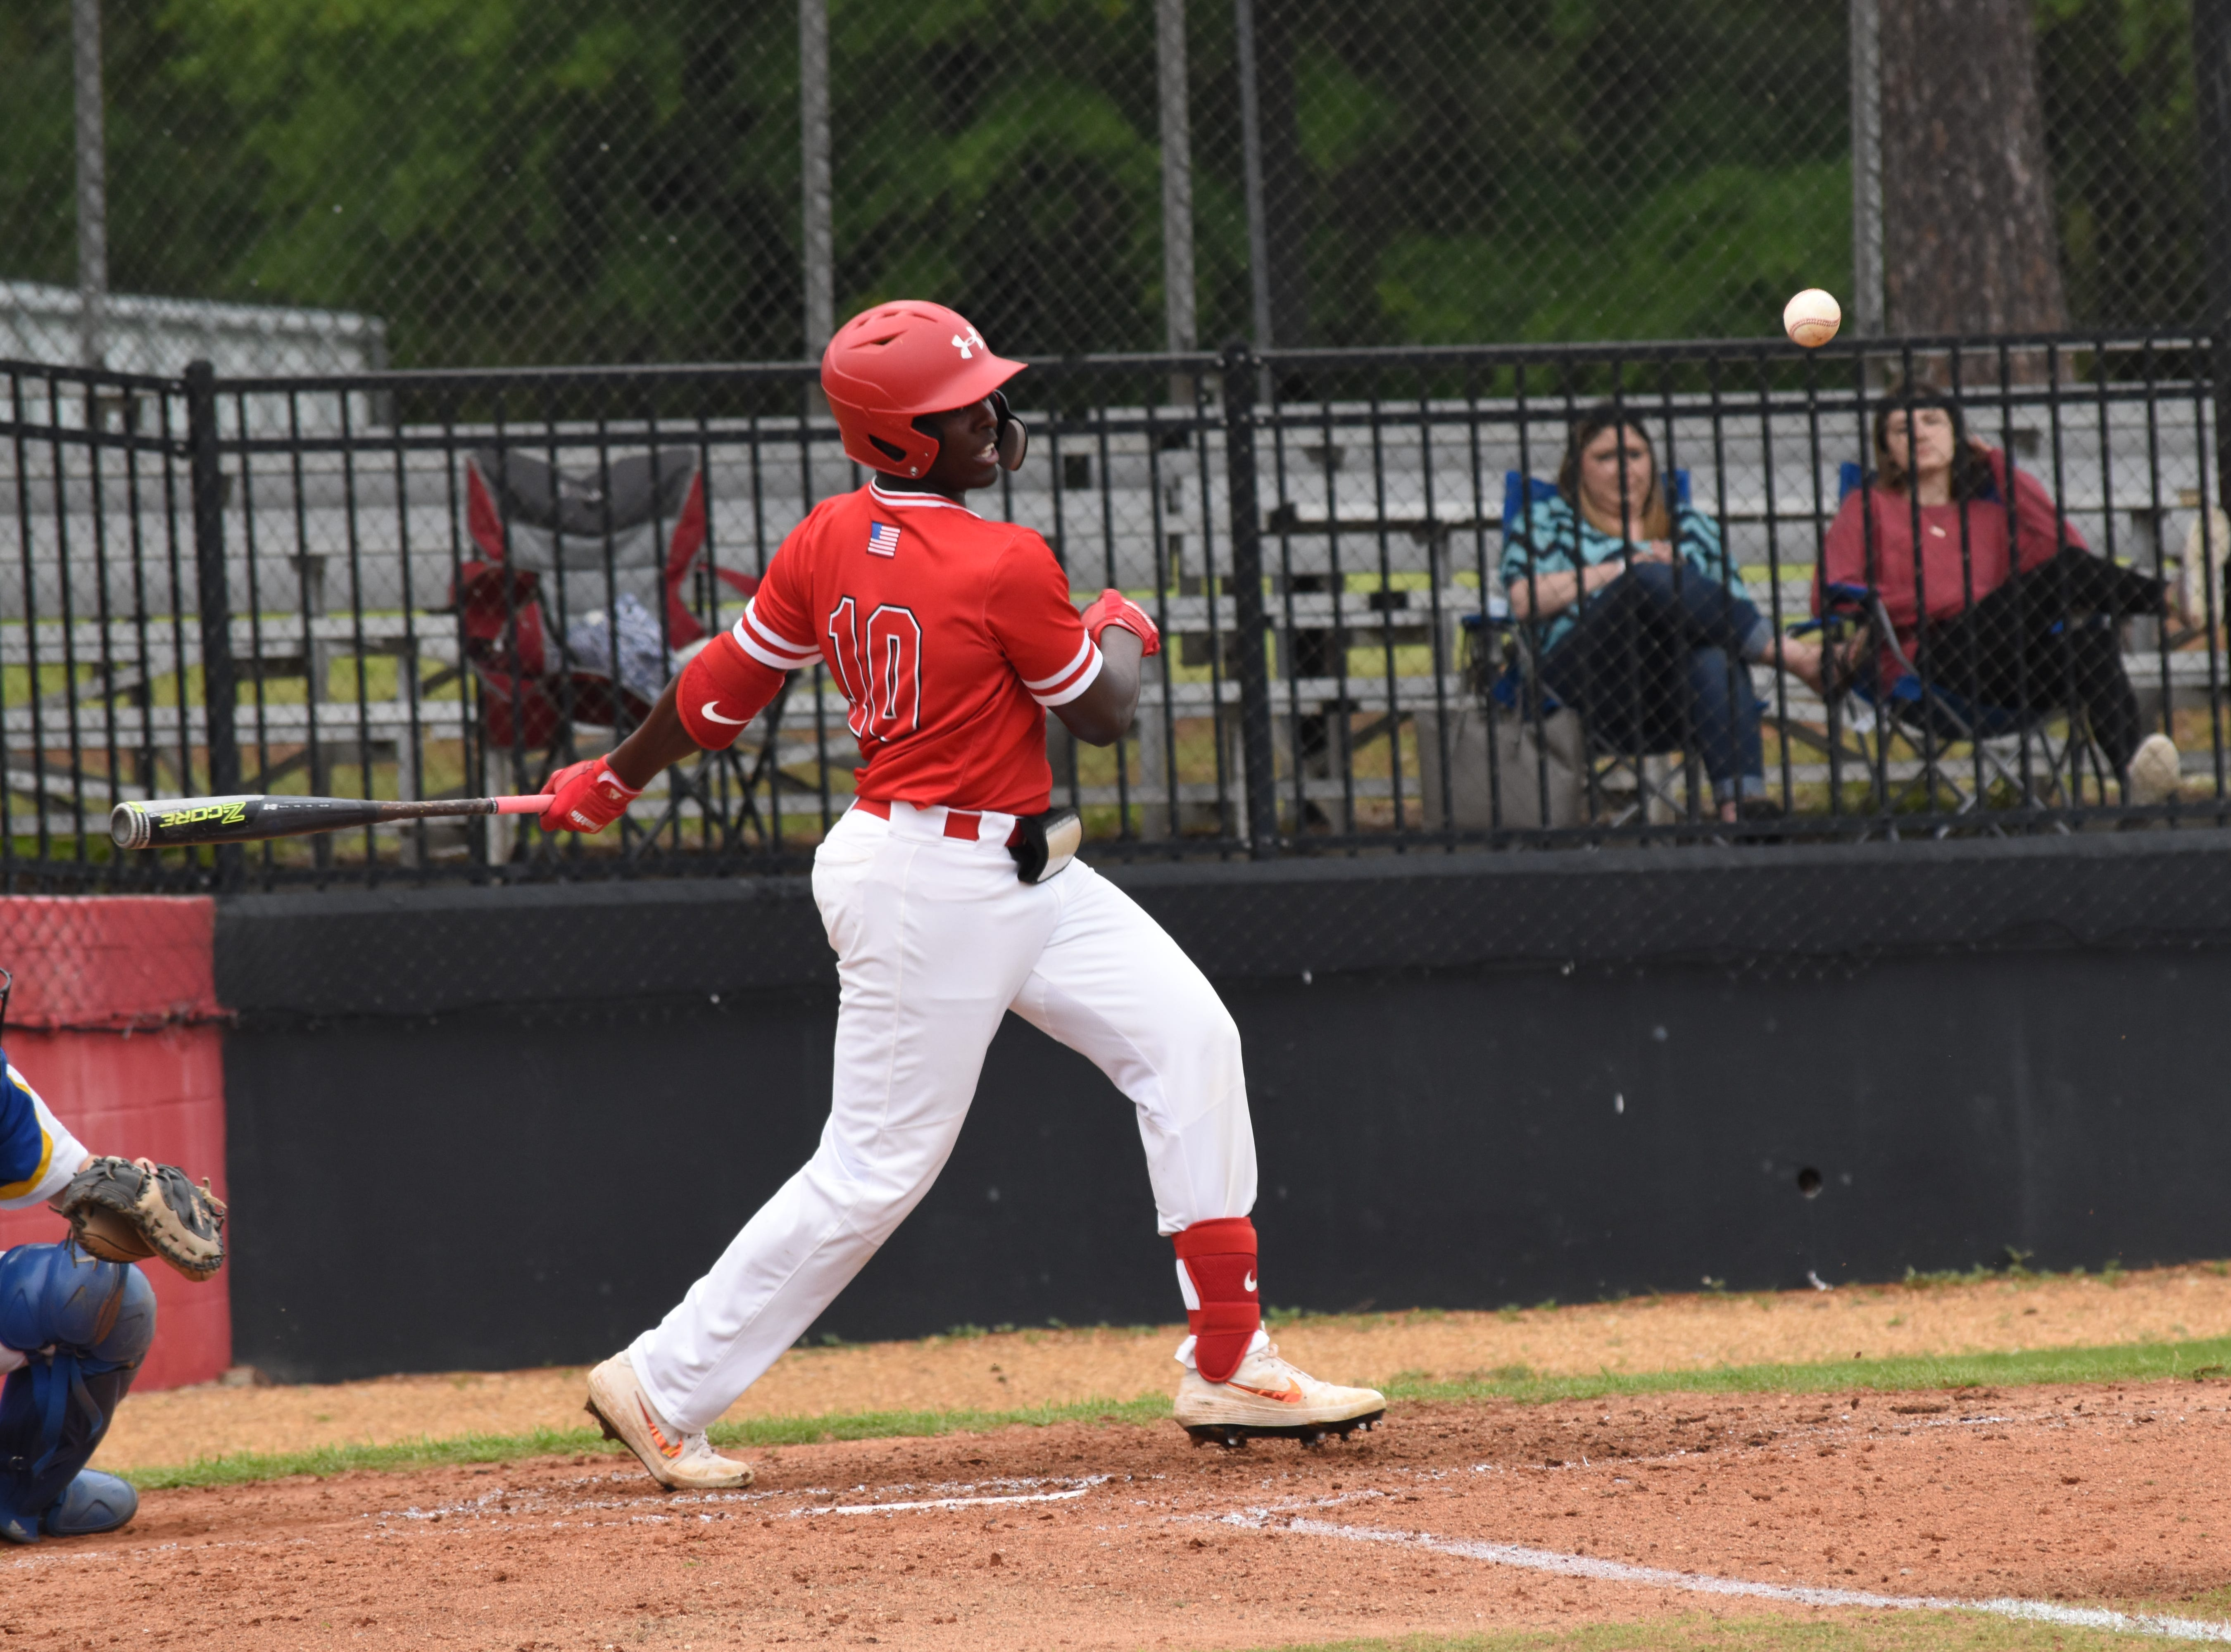 Tioga outfielder Isaac Williams get a hit against Buckeye High School in Game 1 of a double-header Friday, April 5, 2019. Tioga won both games.